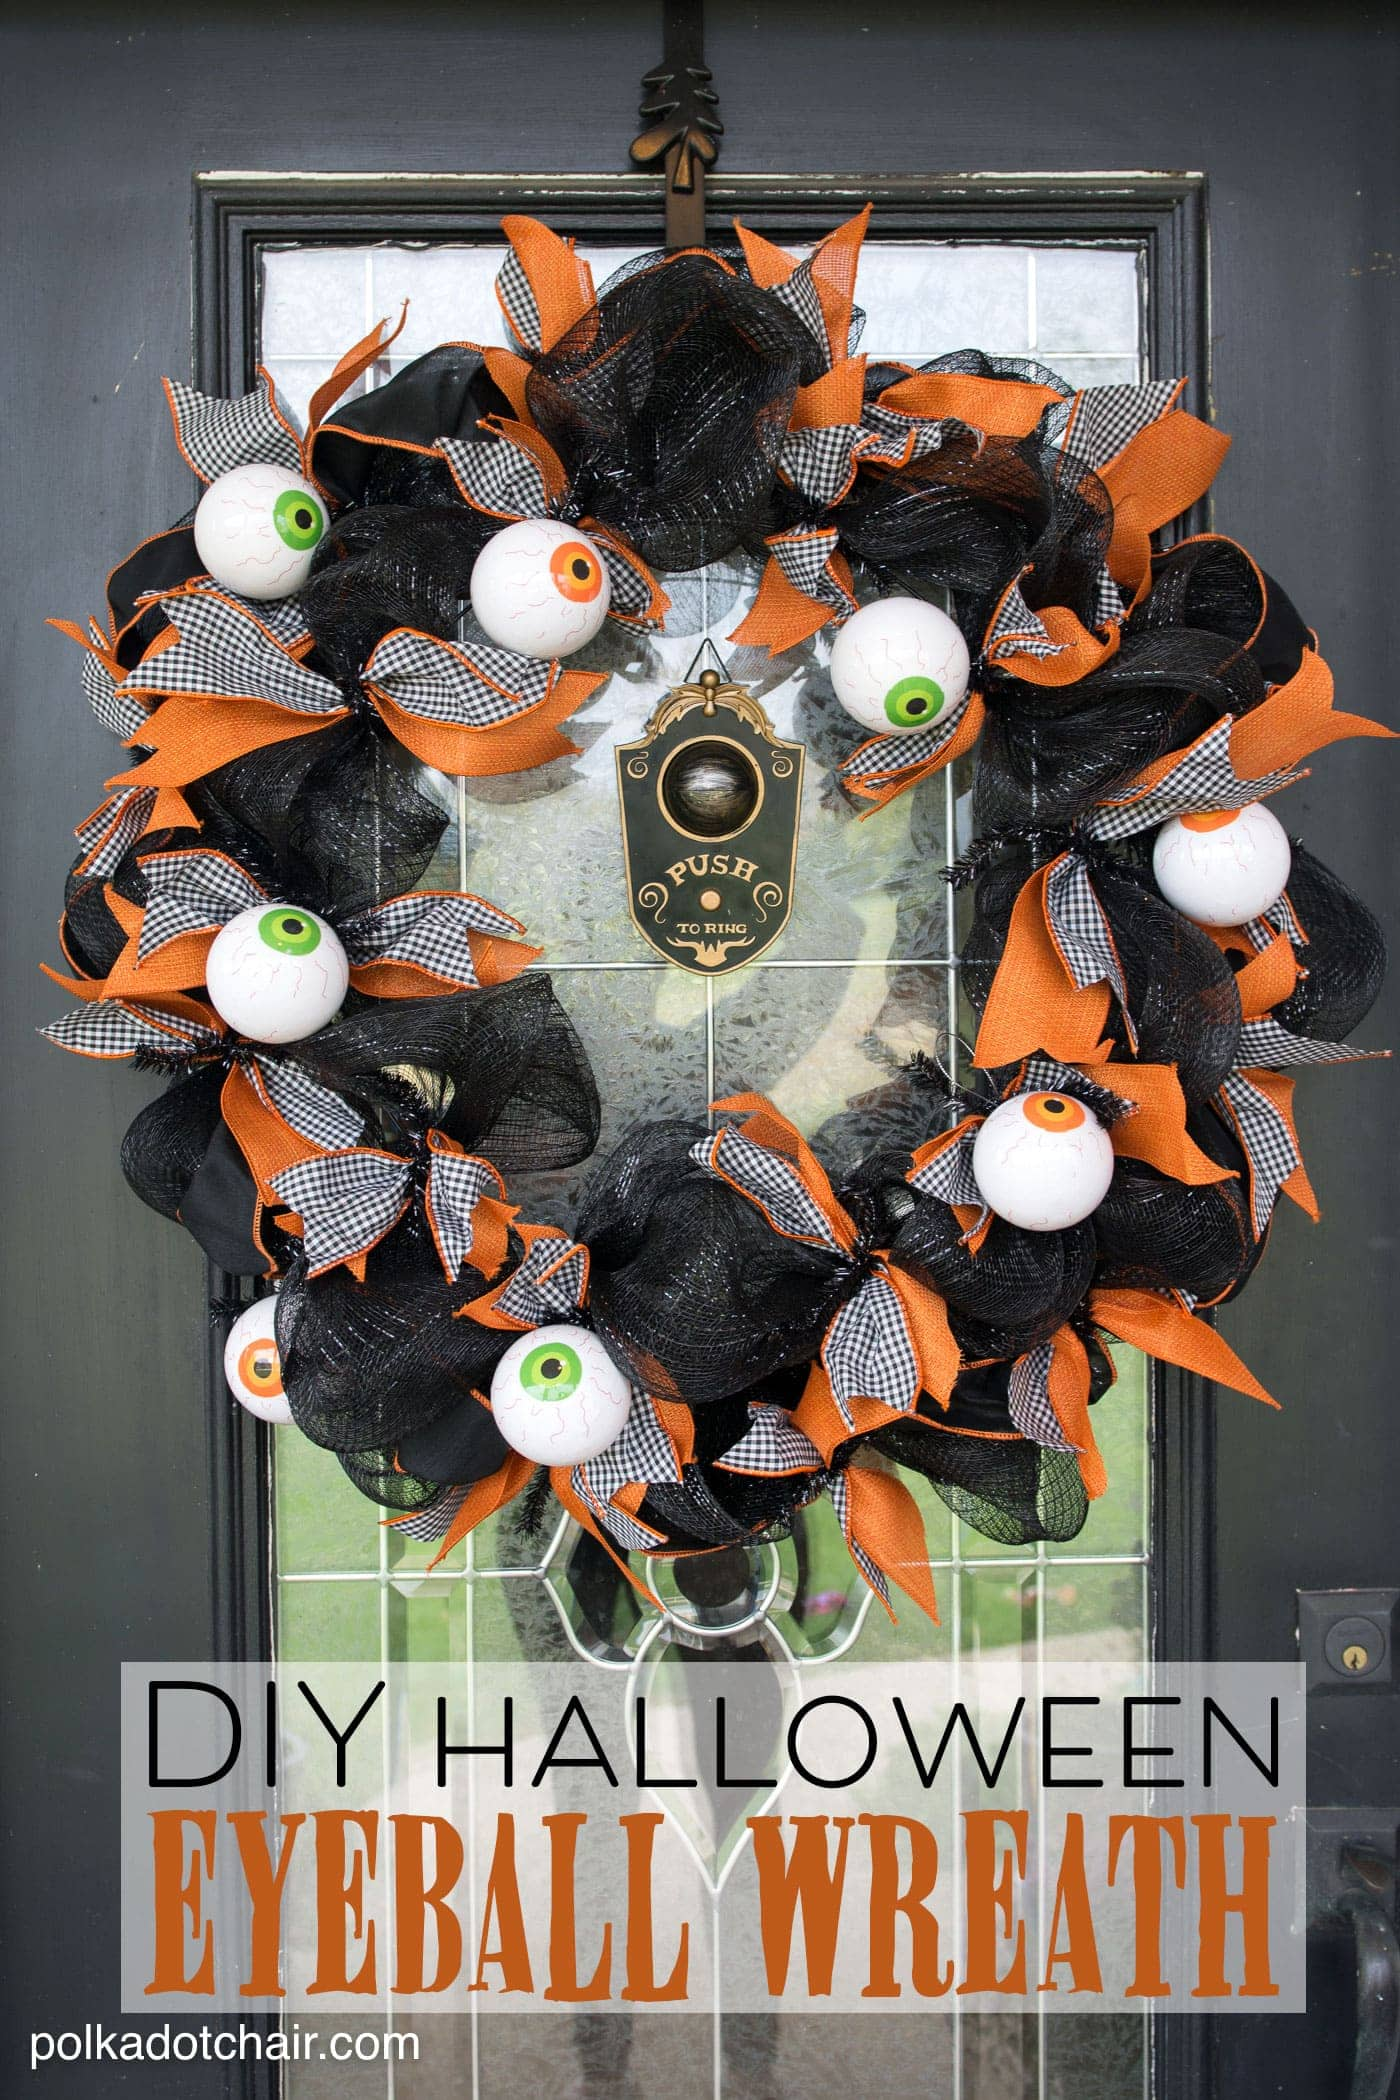 Diy halloween wreath - Diy Halloween Wreath